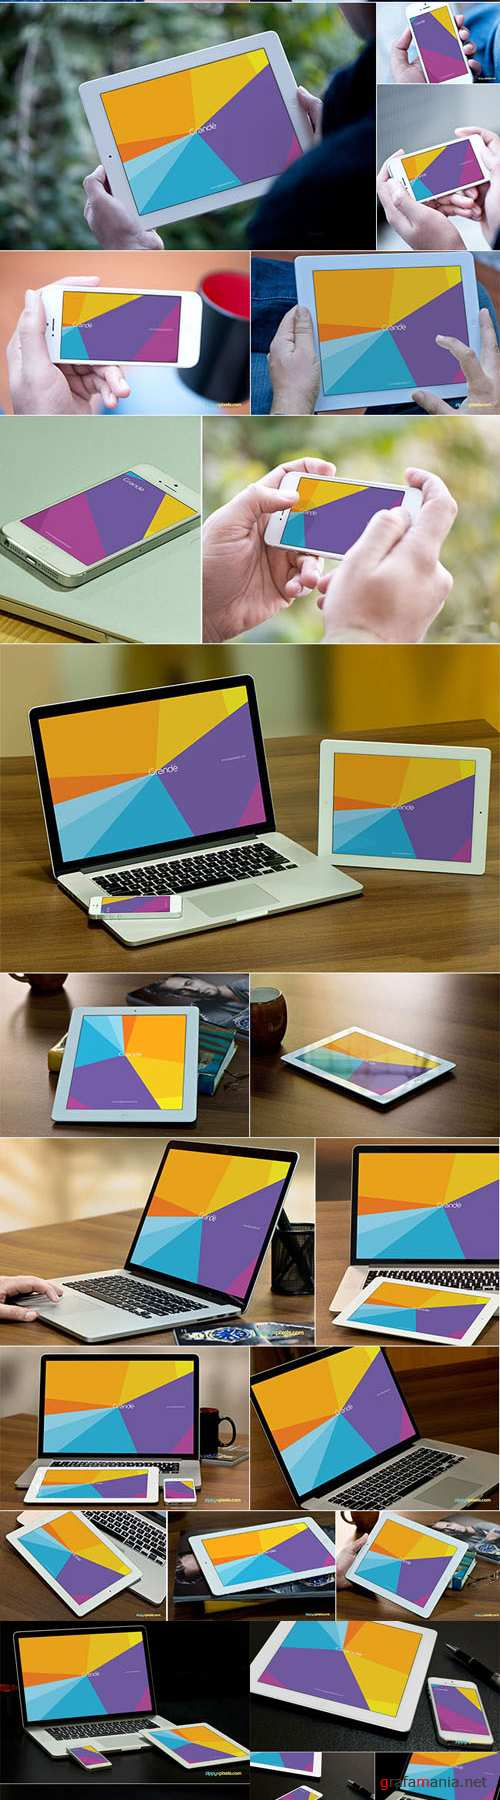 35 Apple Device Mockups - Zippypixels